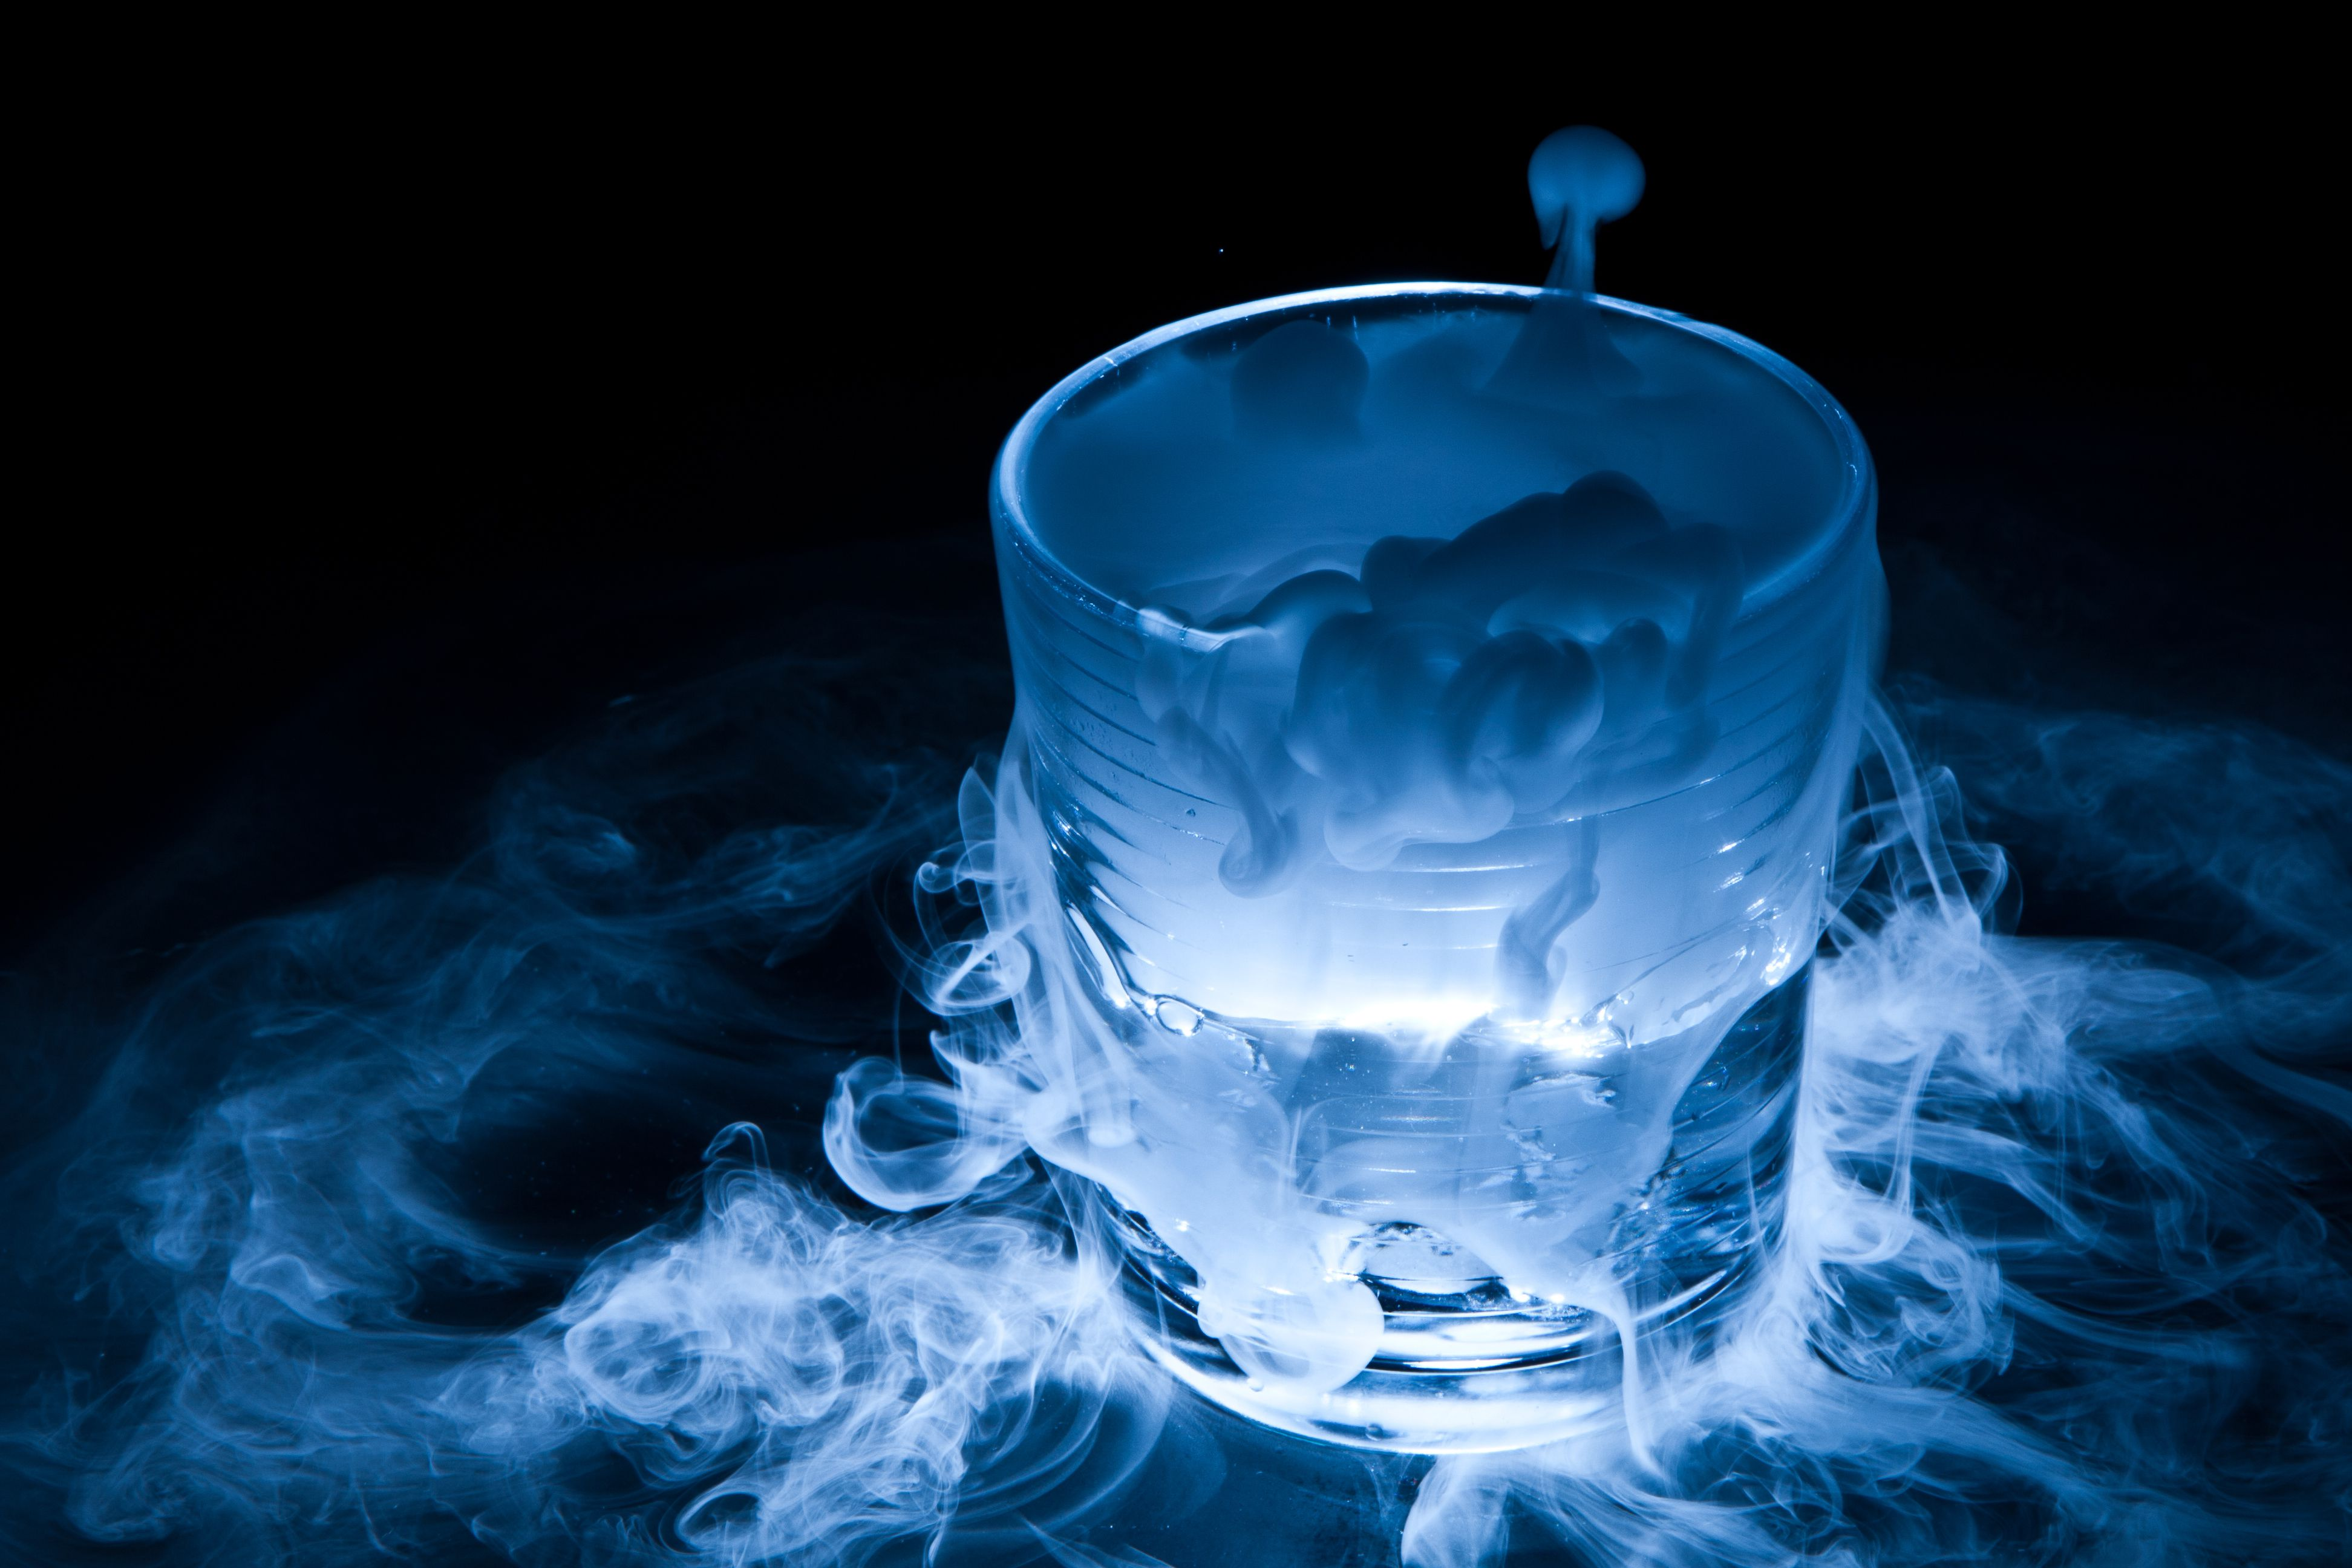 dry ice projects Buy dry ice in block form performing school experiments and creating fog effects both require blocks of dry ice dry ice also comes in pellet form but is mainly used for dry ice blasting to clean surfaces, or for medical transportation.